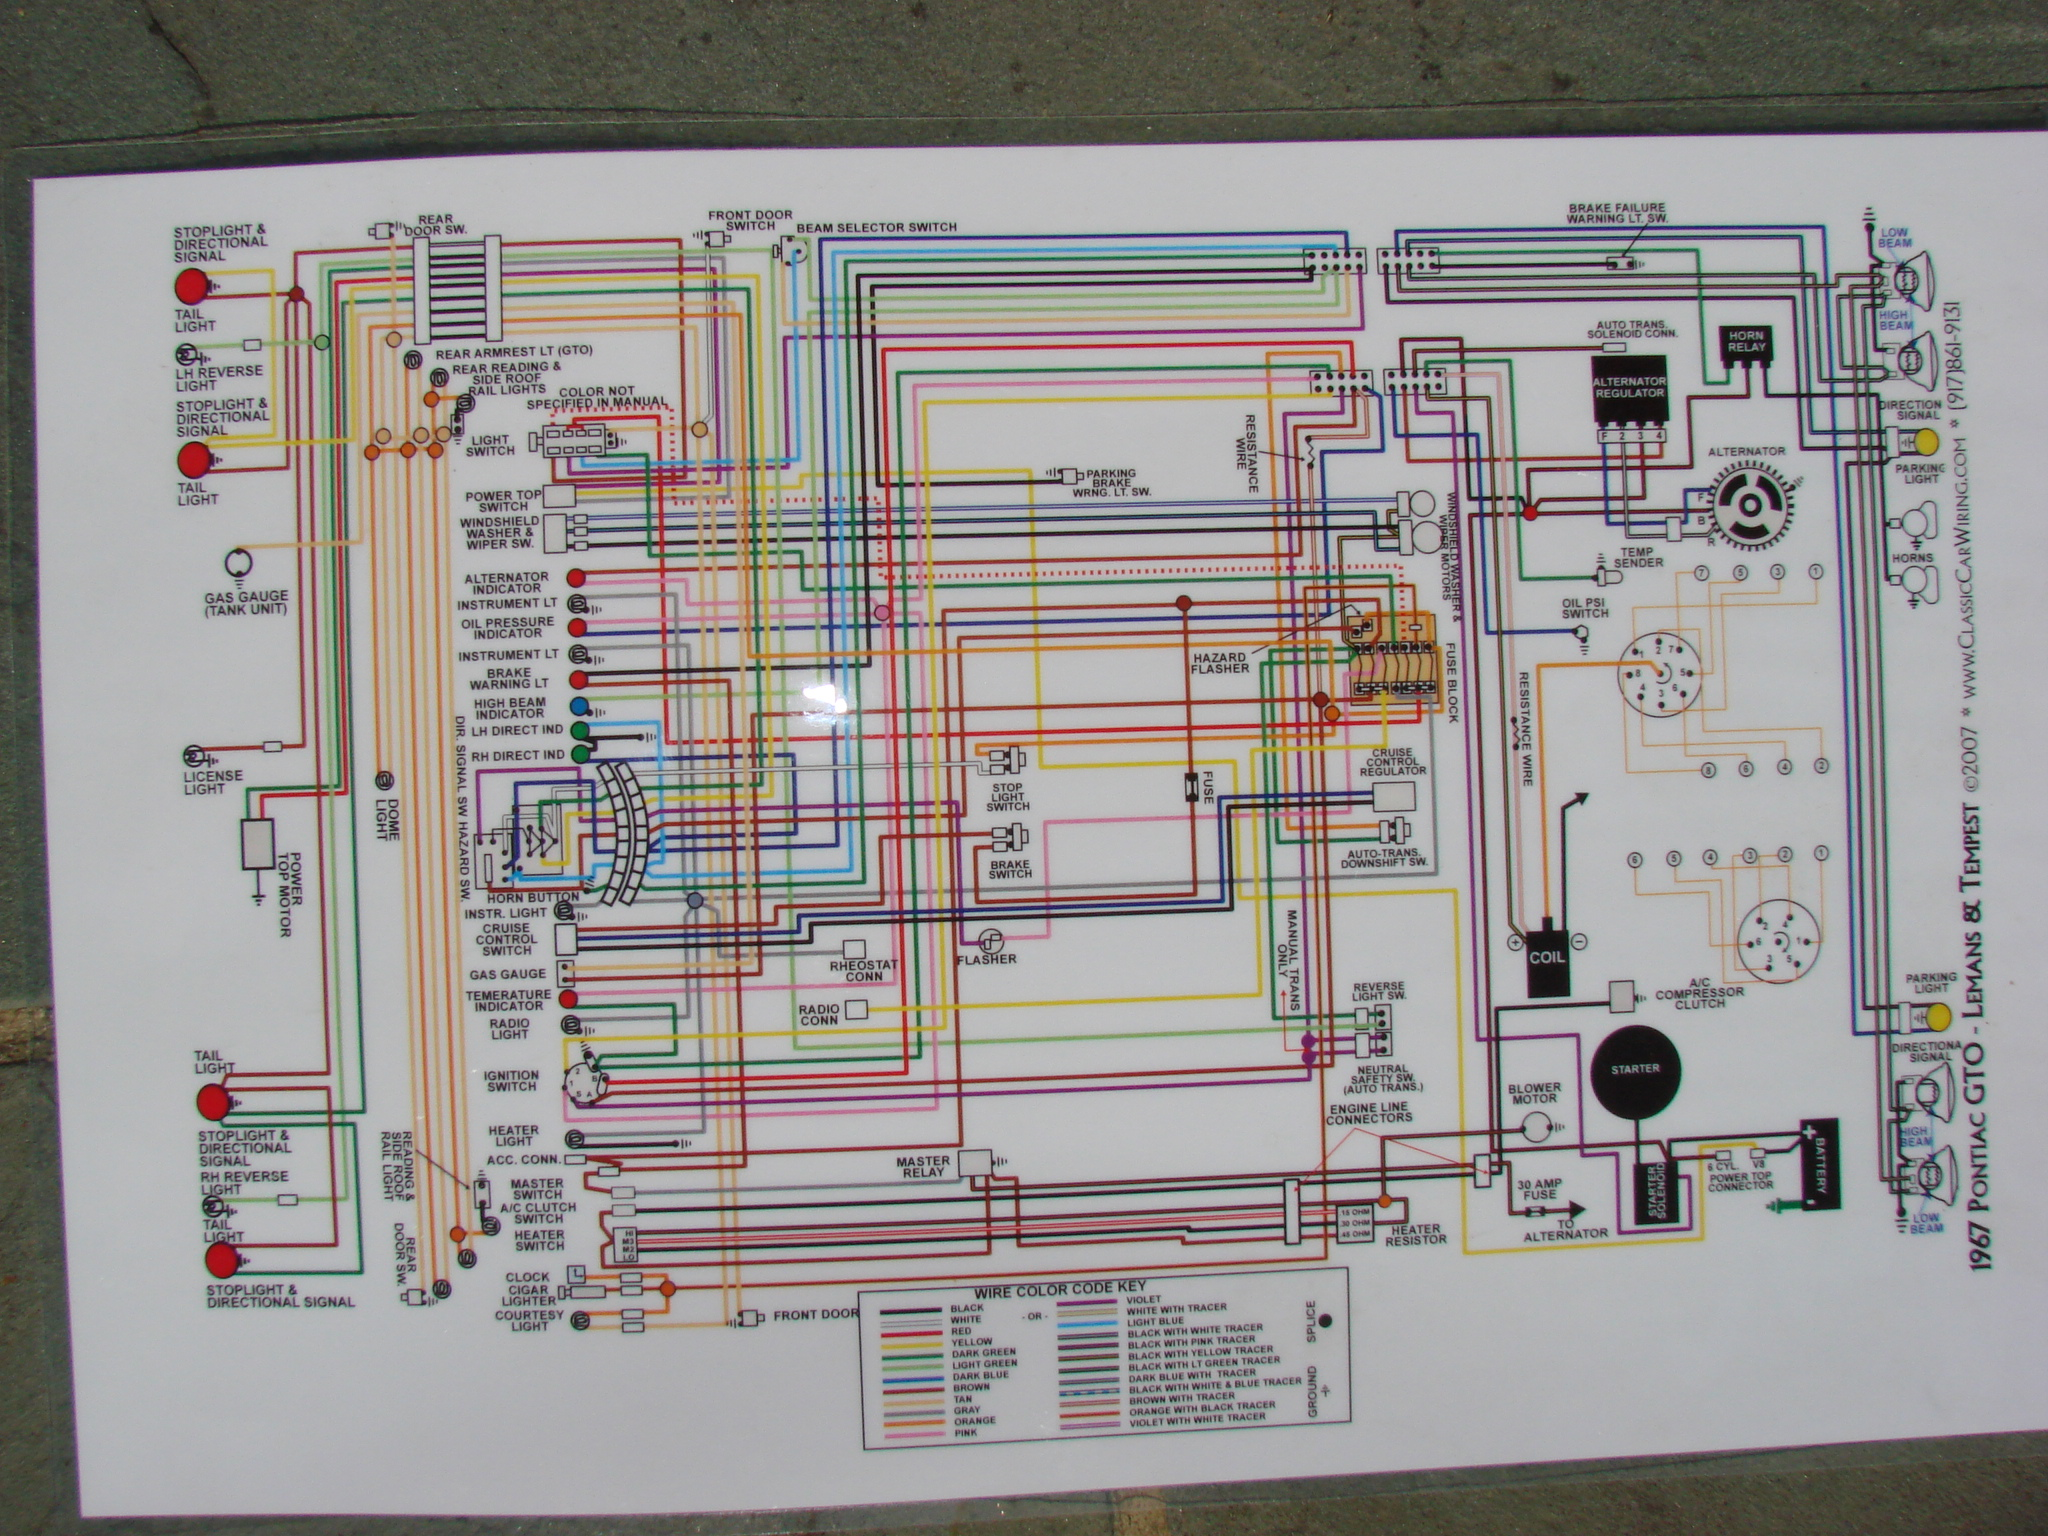 Wiring Diagram For 1972 Chevelle Get Free Image About Wiring Diagram